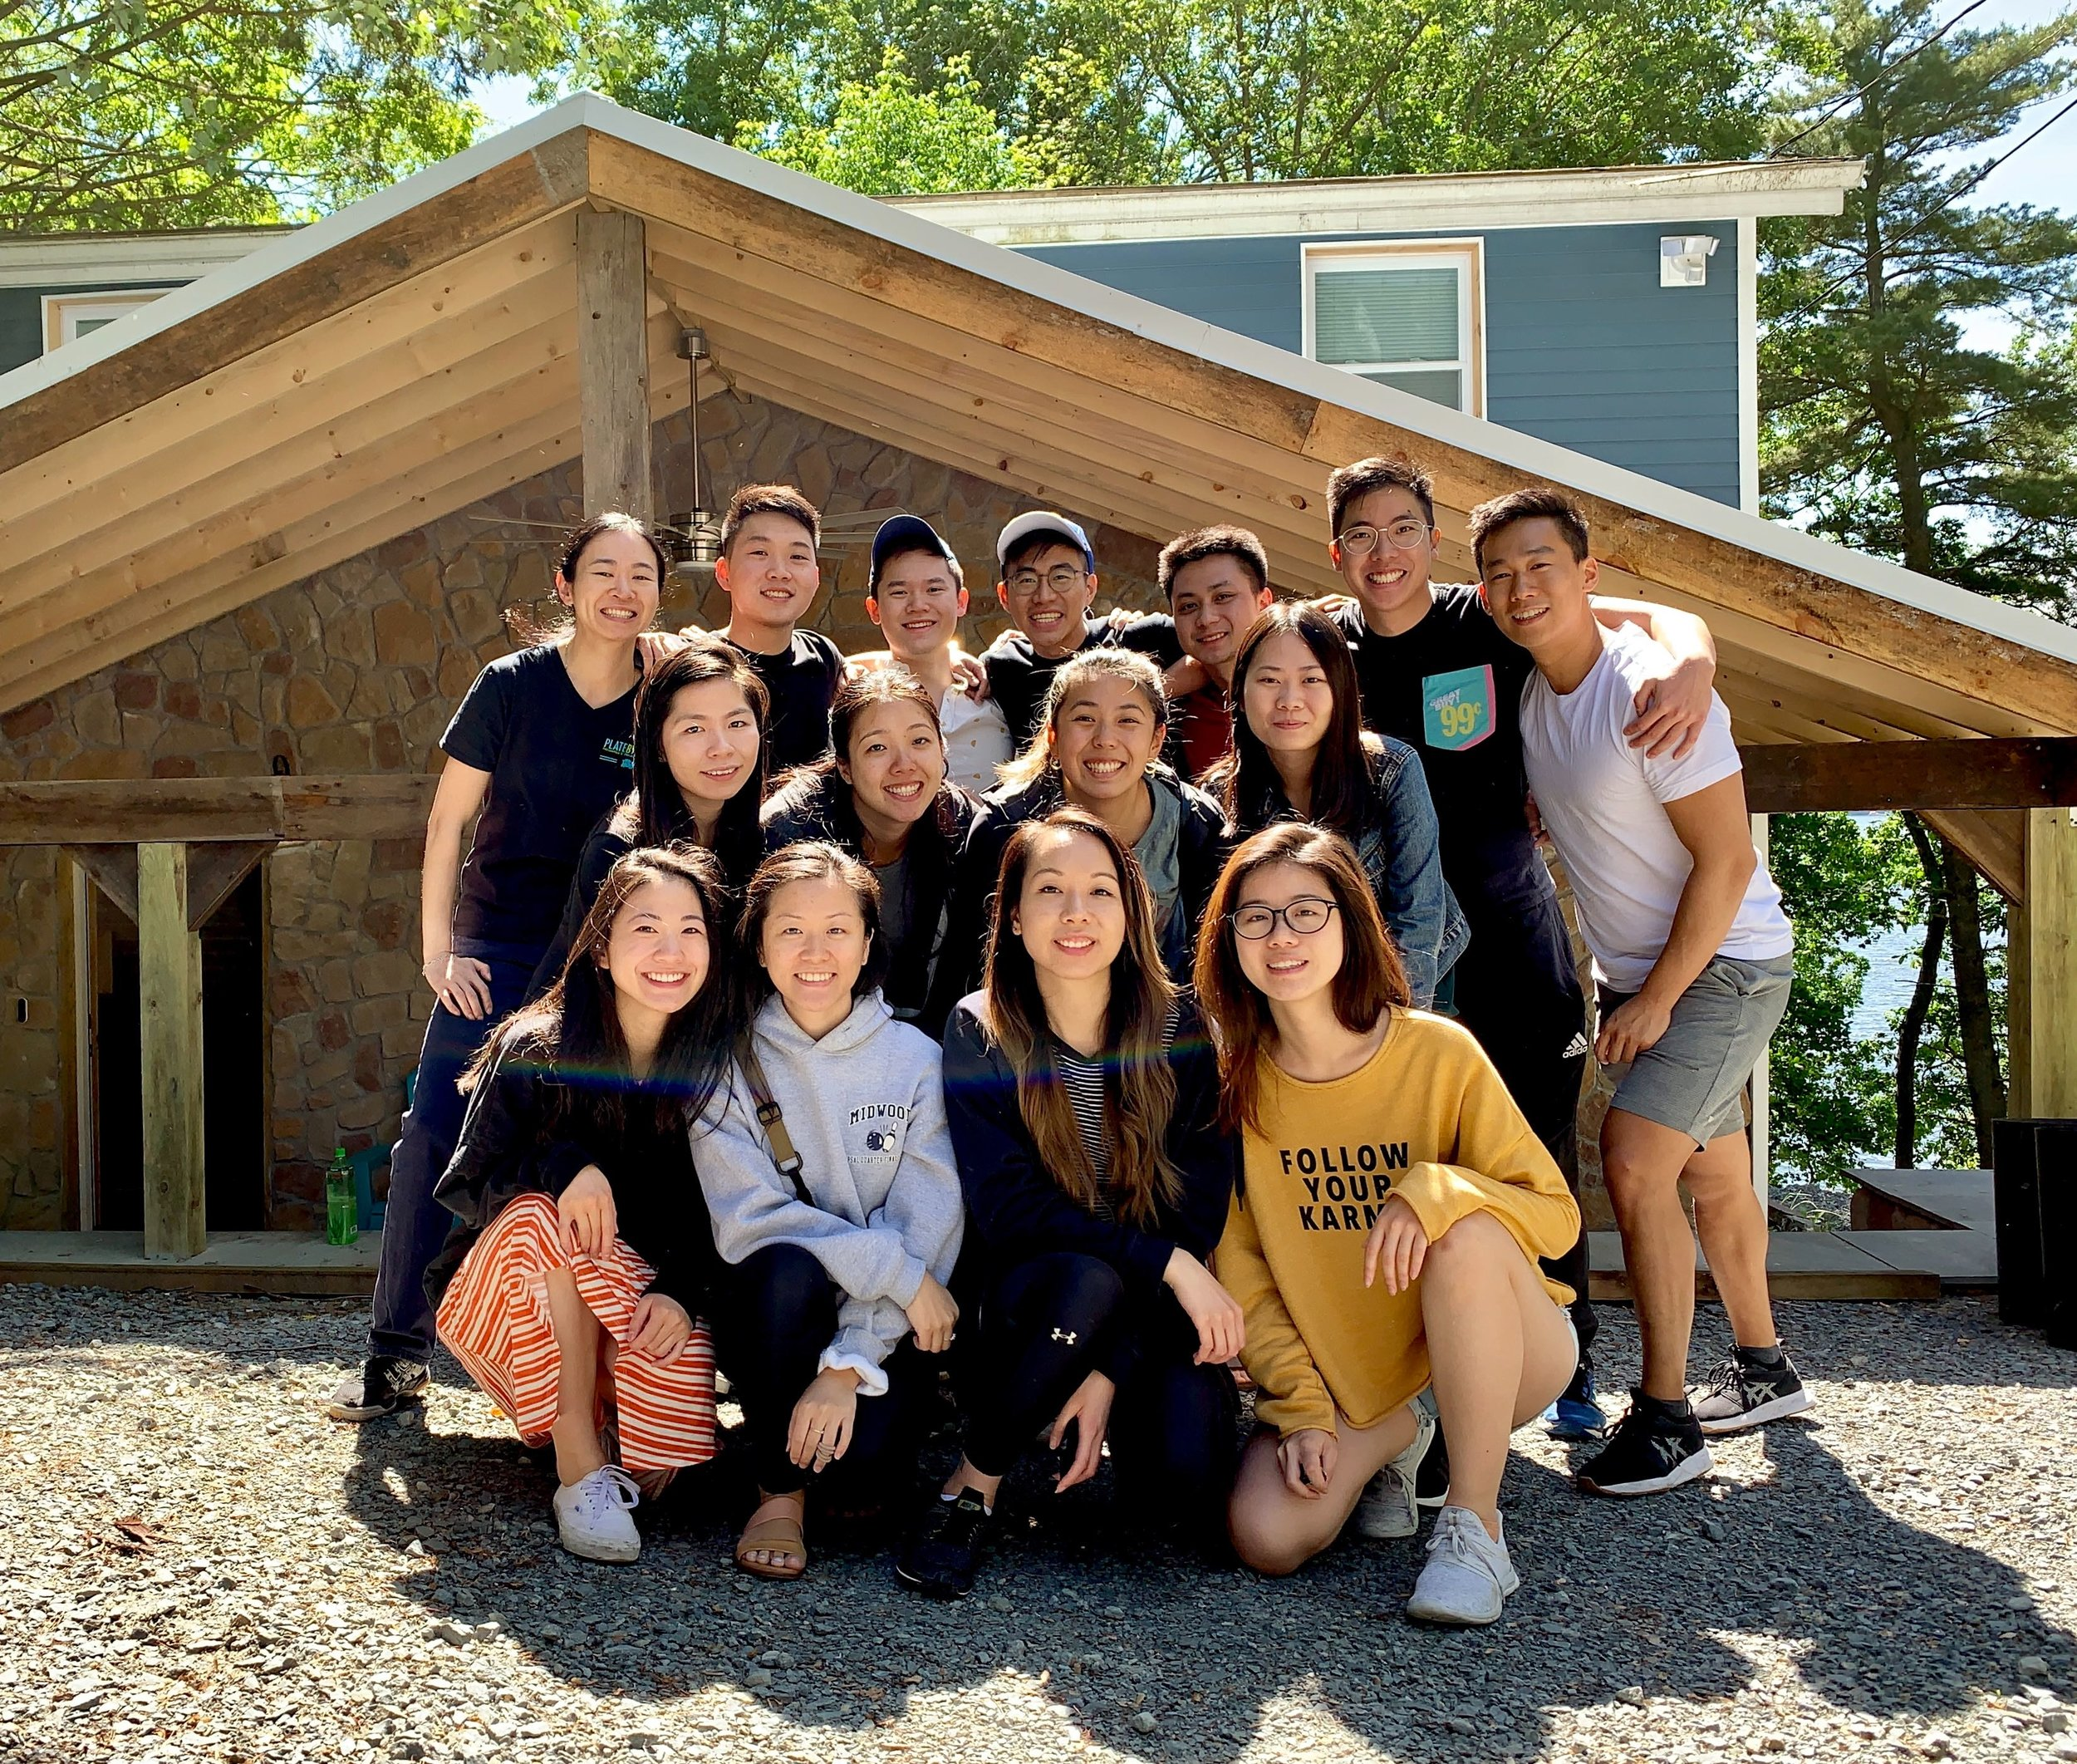 The NY team during their retreat at the Poconos